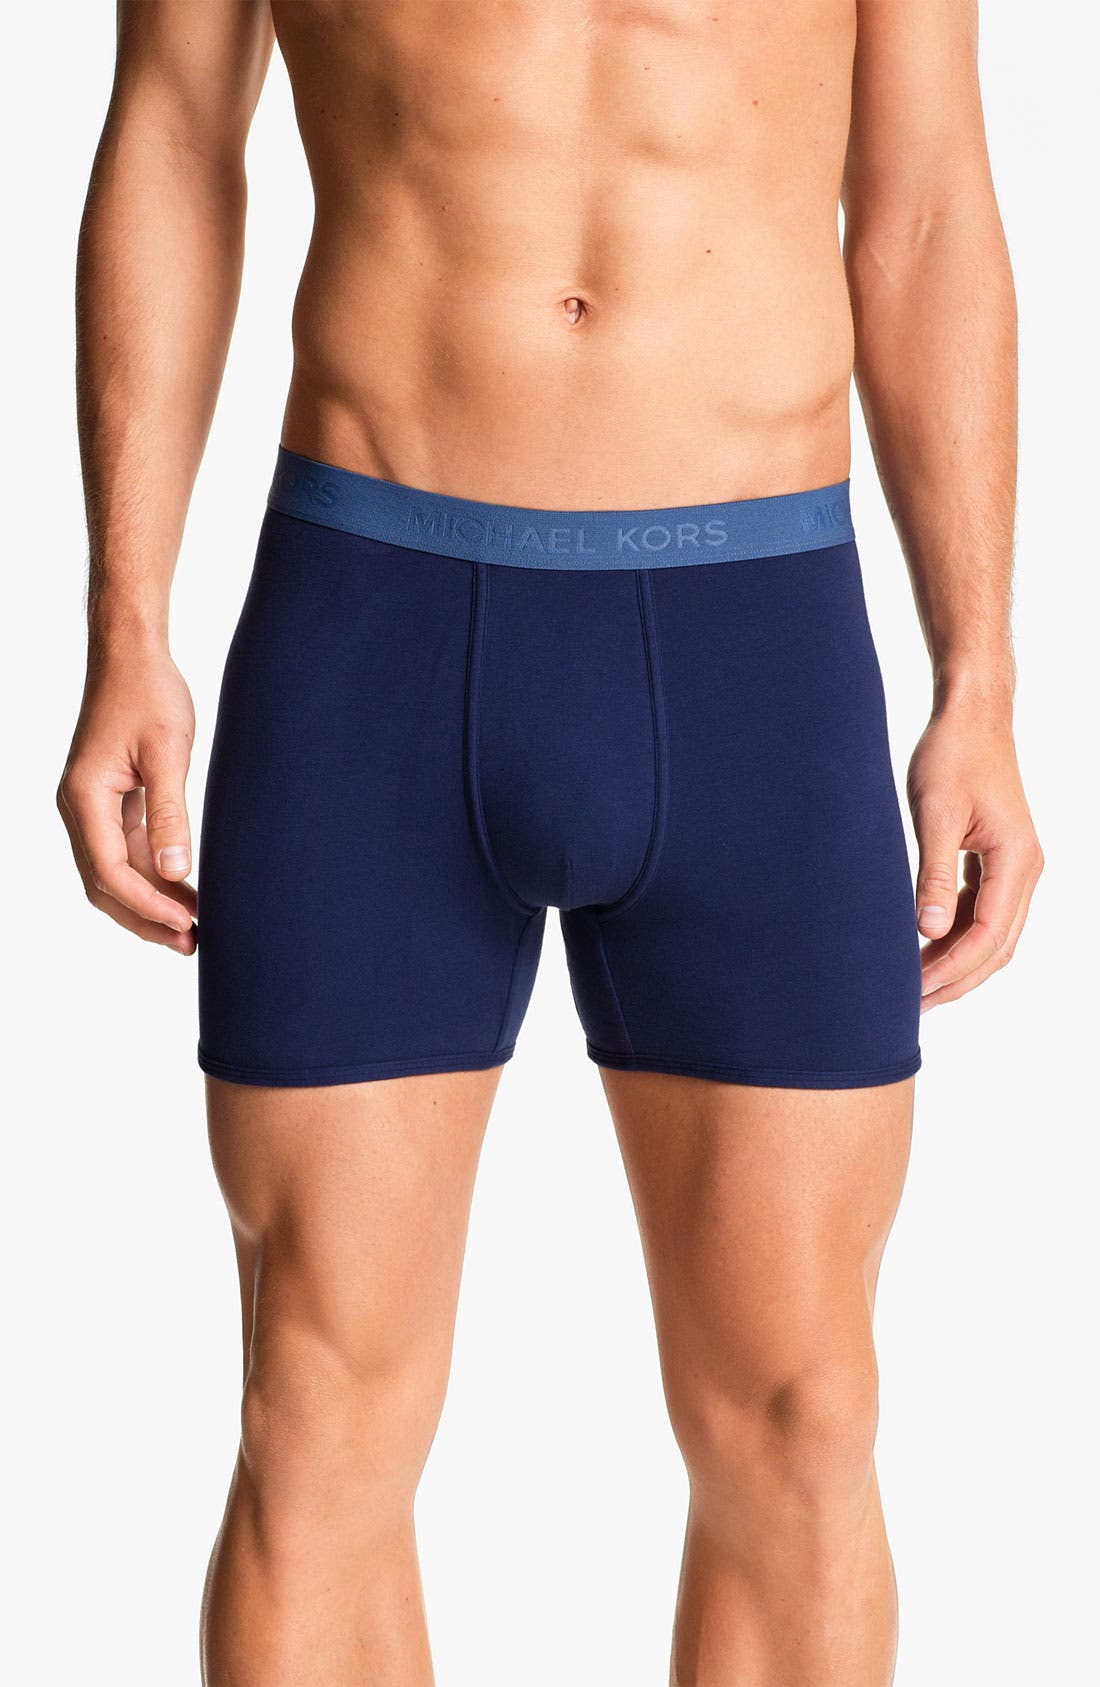 Main Image - Michael Kors 'Free Fit' Boxer Briefs